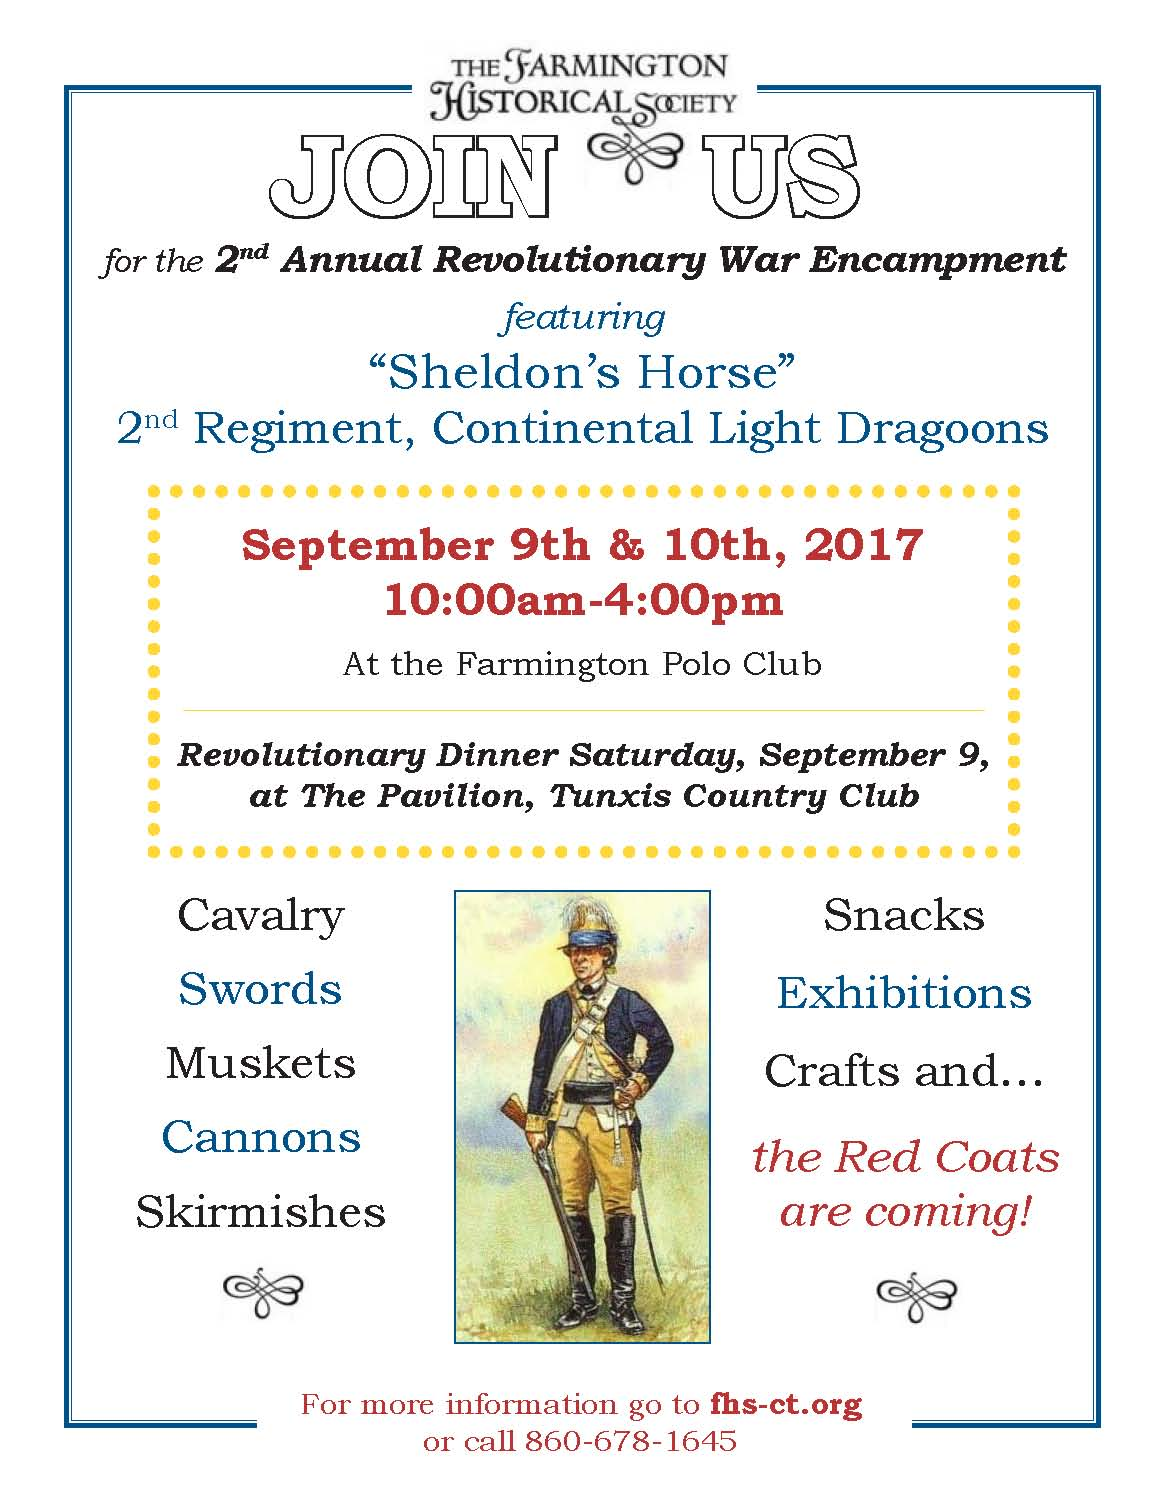 http://fhs-ct.org/2017/07/09/revolutionary-war-encampment/